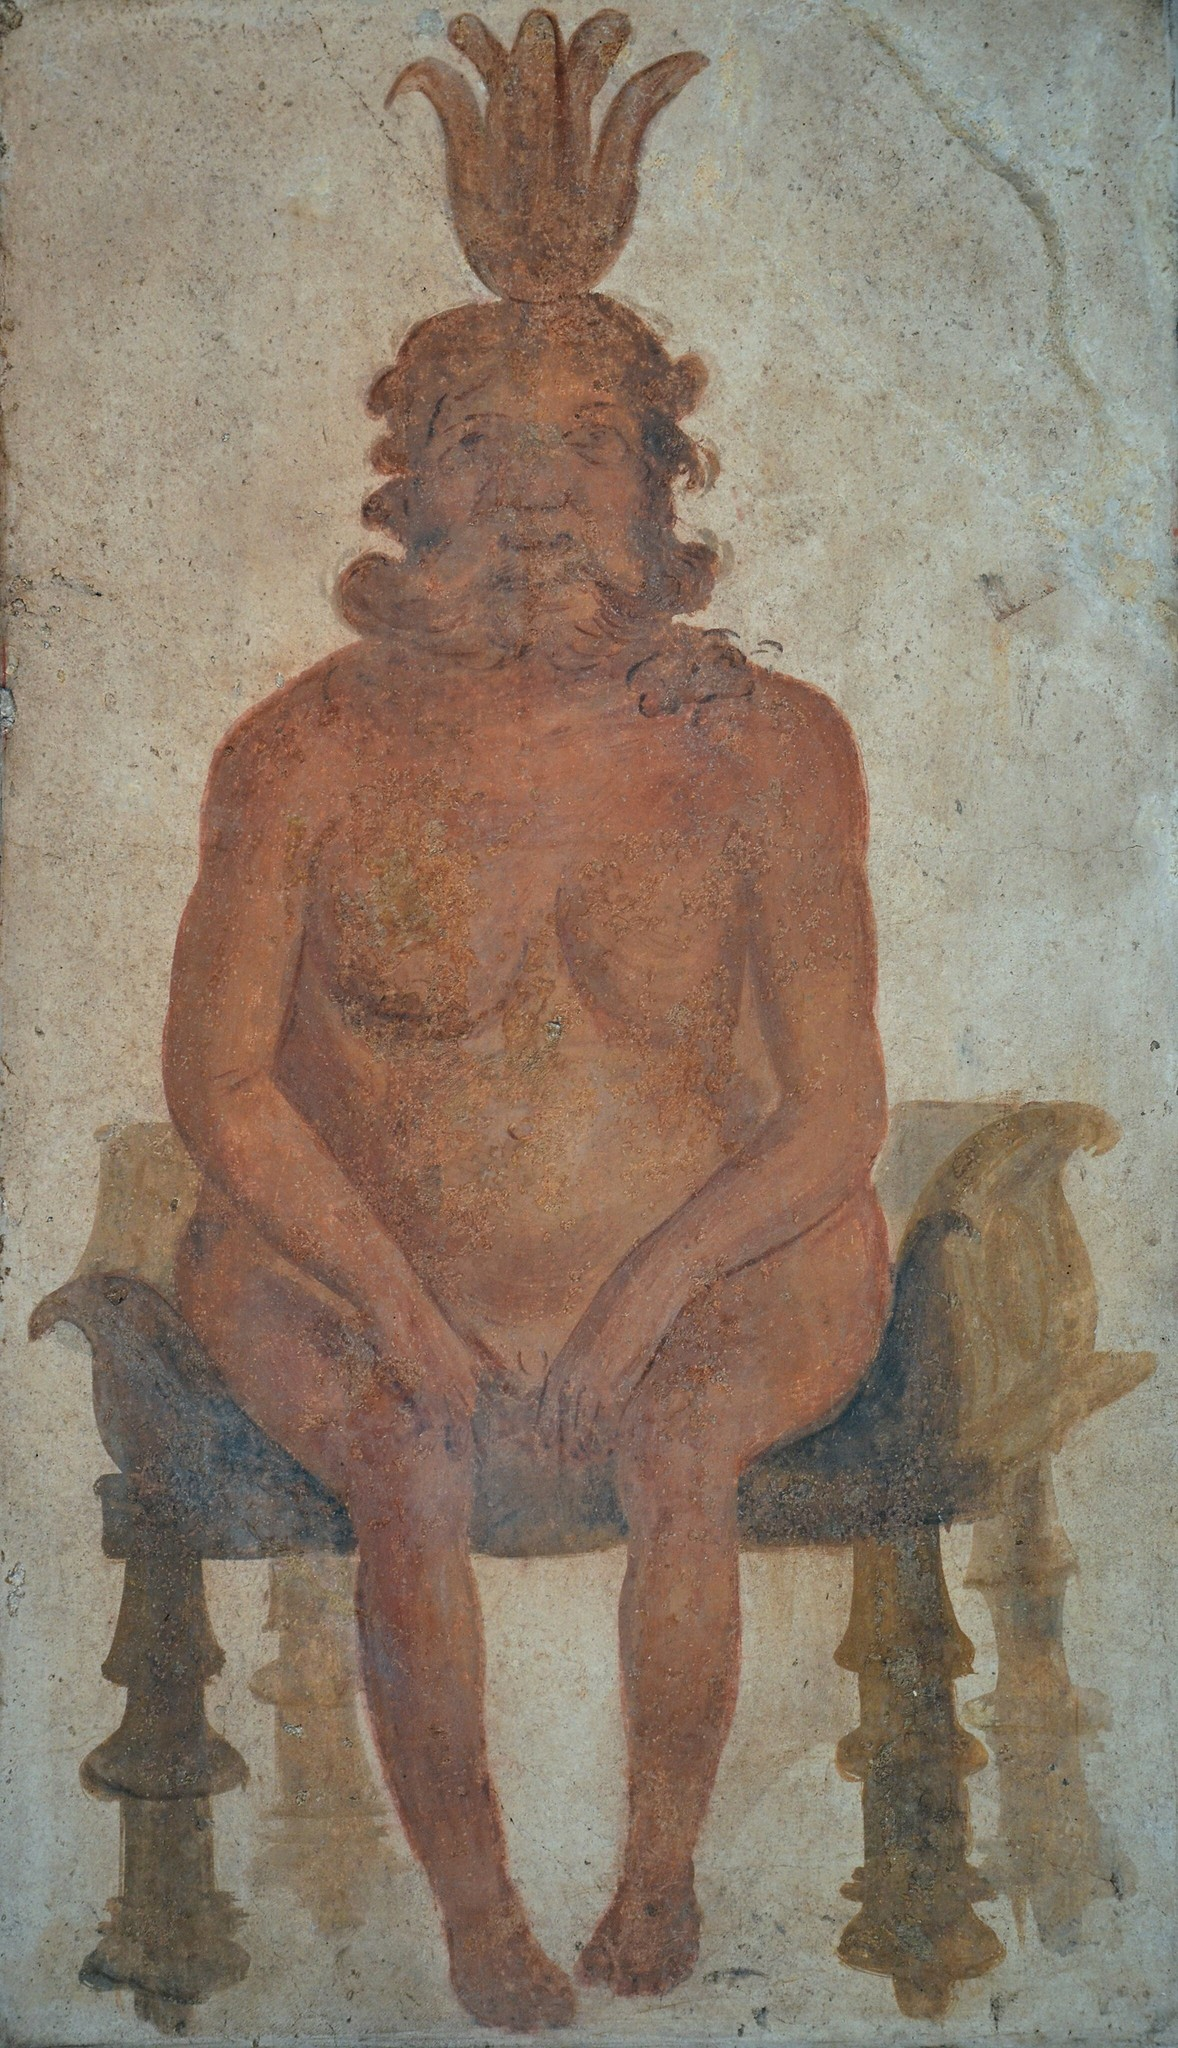 The god even found his way to Pompeii, where he's depicted in this fresco